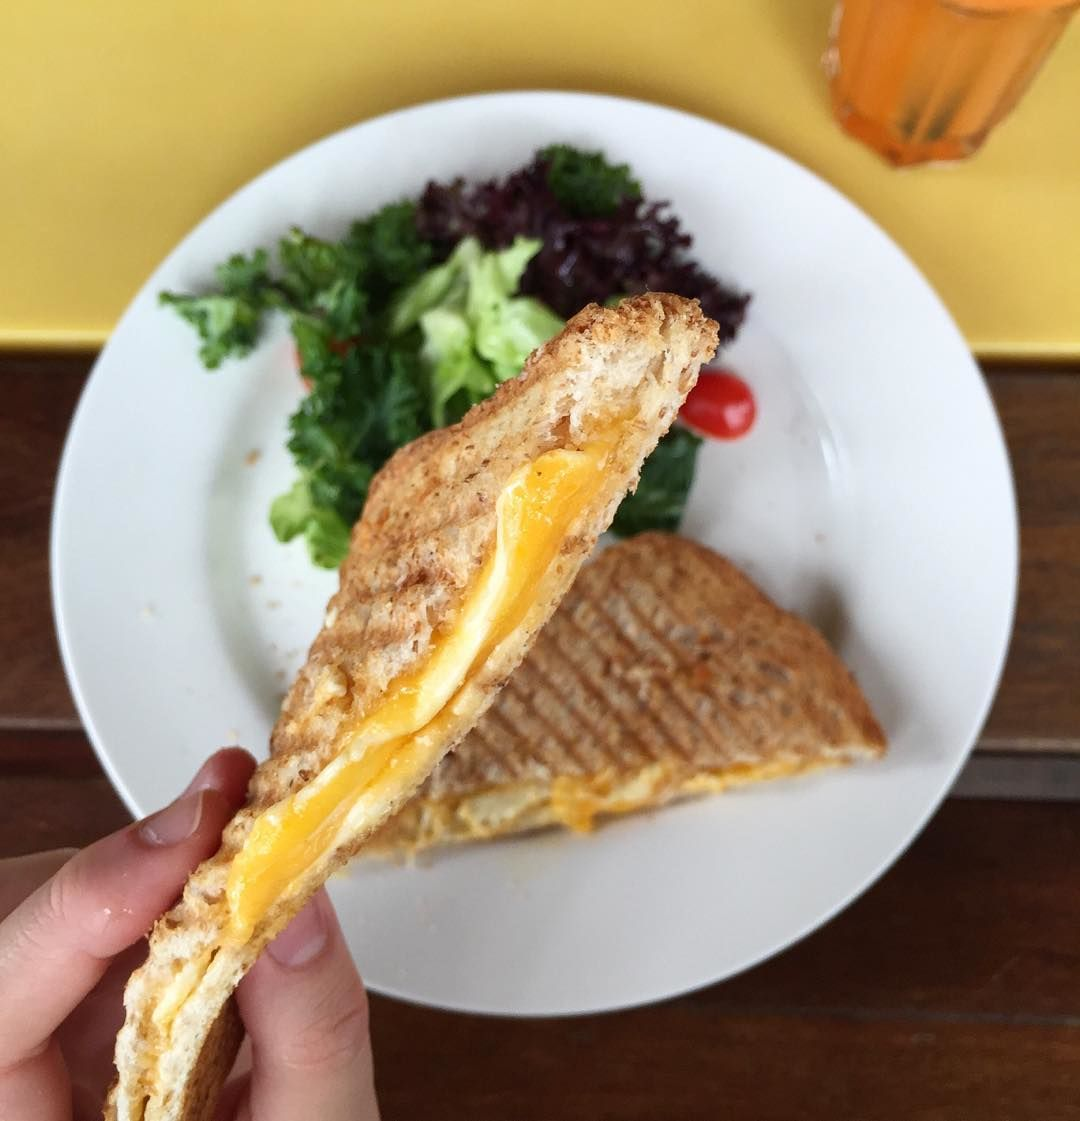 Grilled Cheese Sandwiches - Kith Cafe